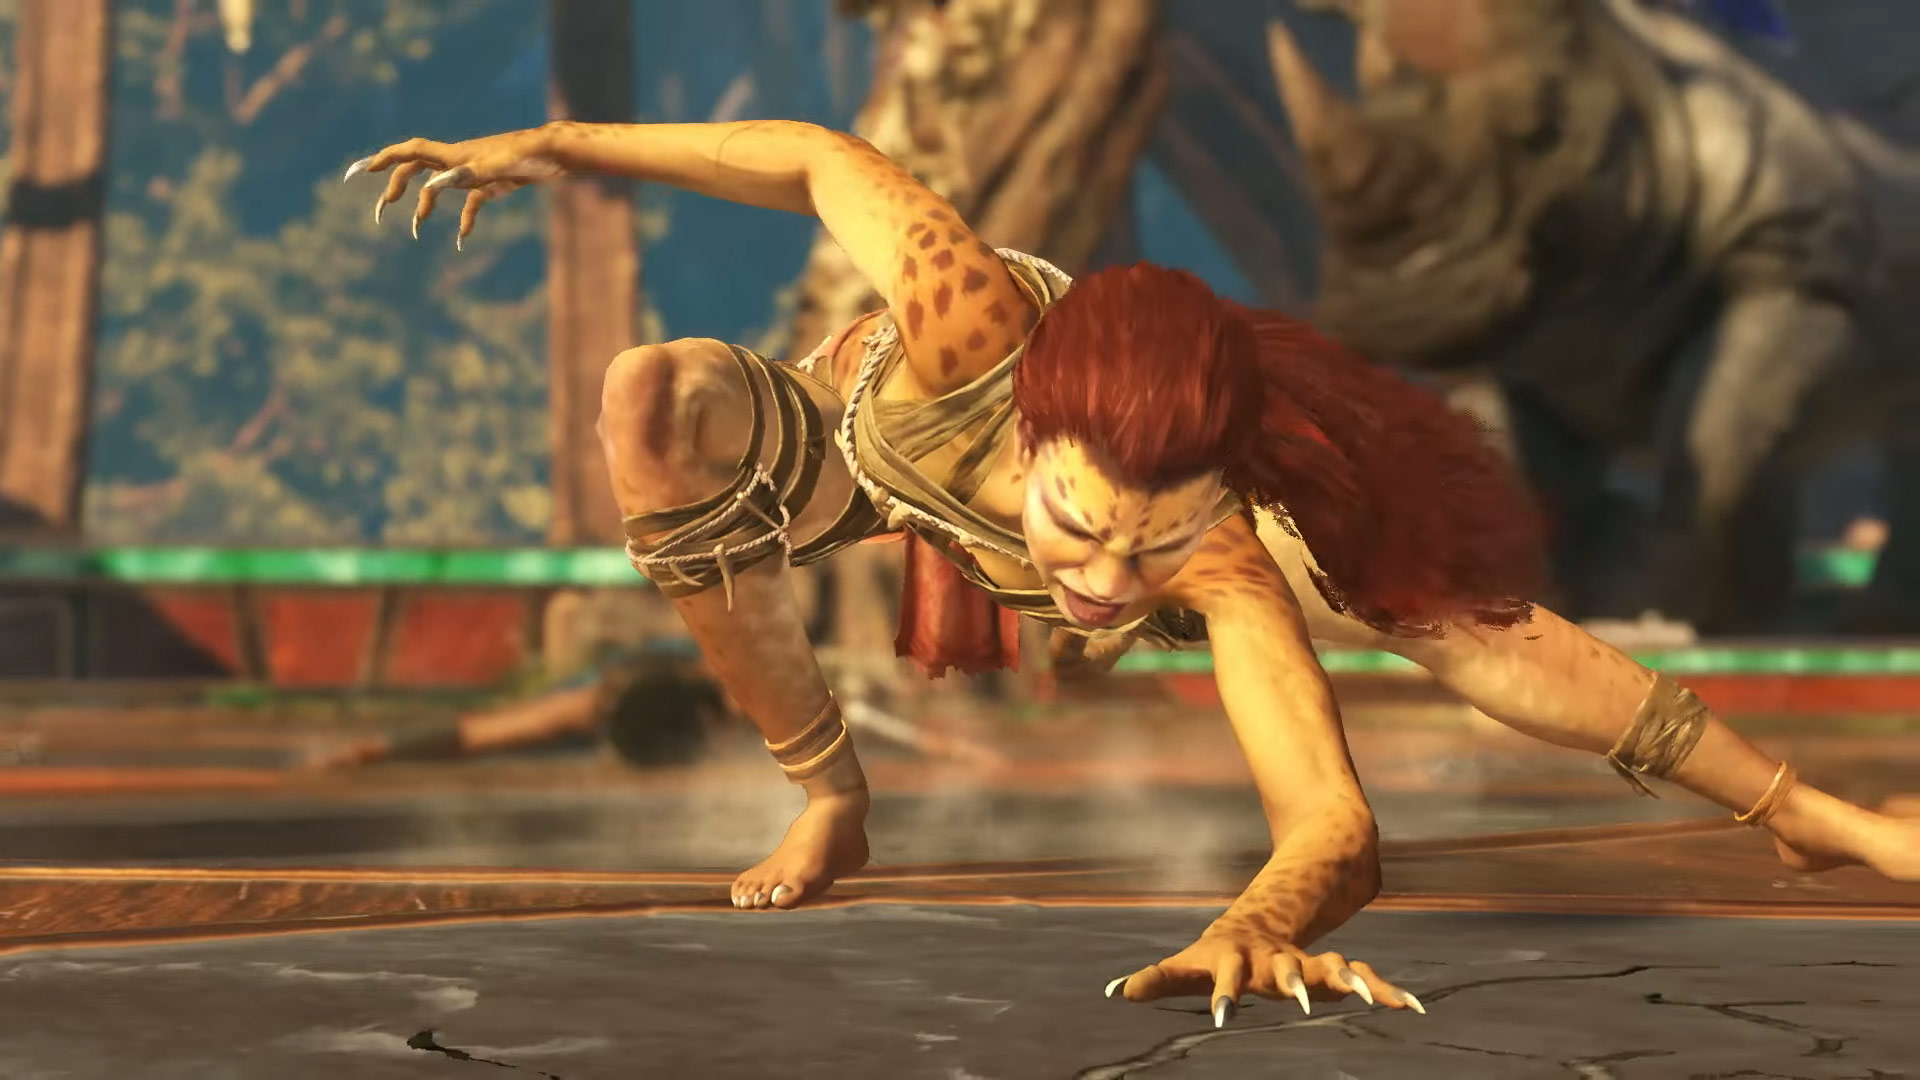 Injustice 2 Cheetah Character Trailer Gallery 6 out of 6 image gallery